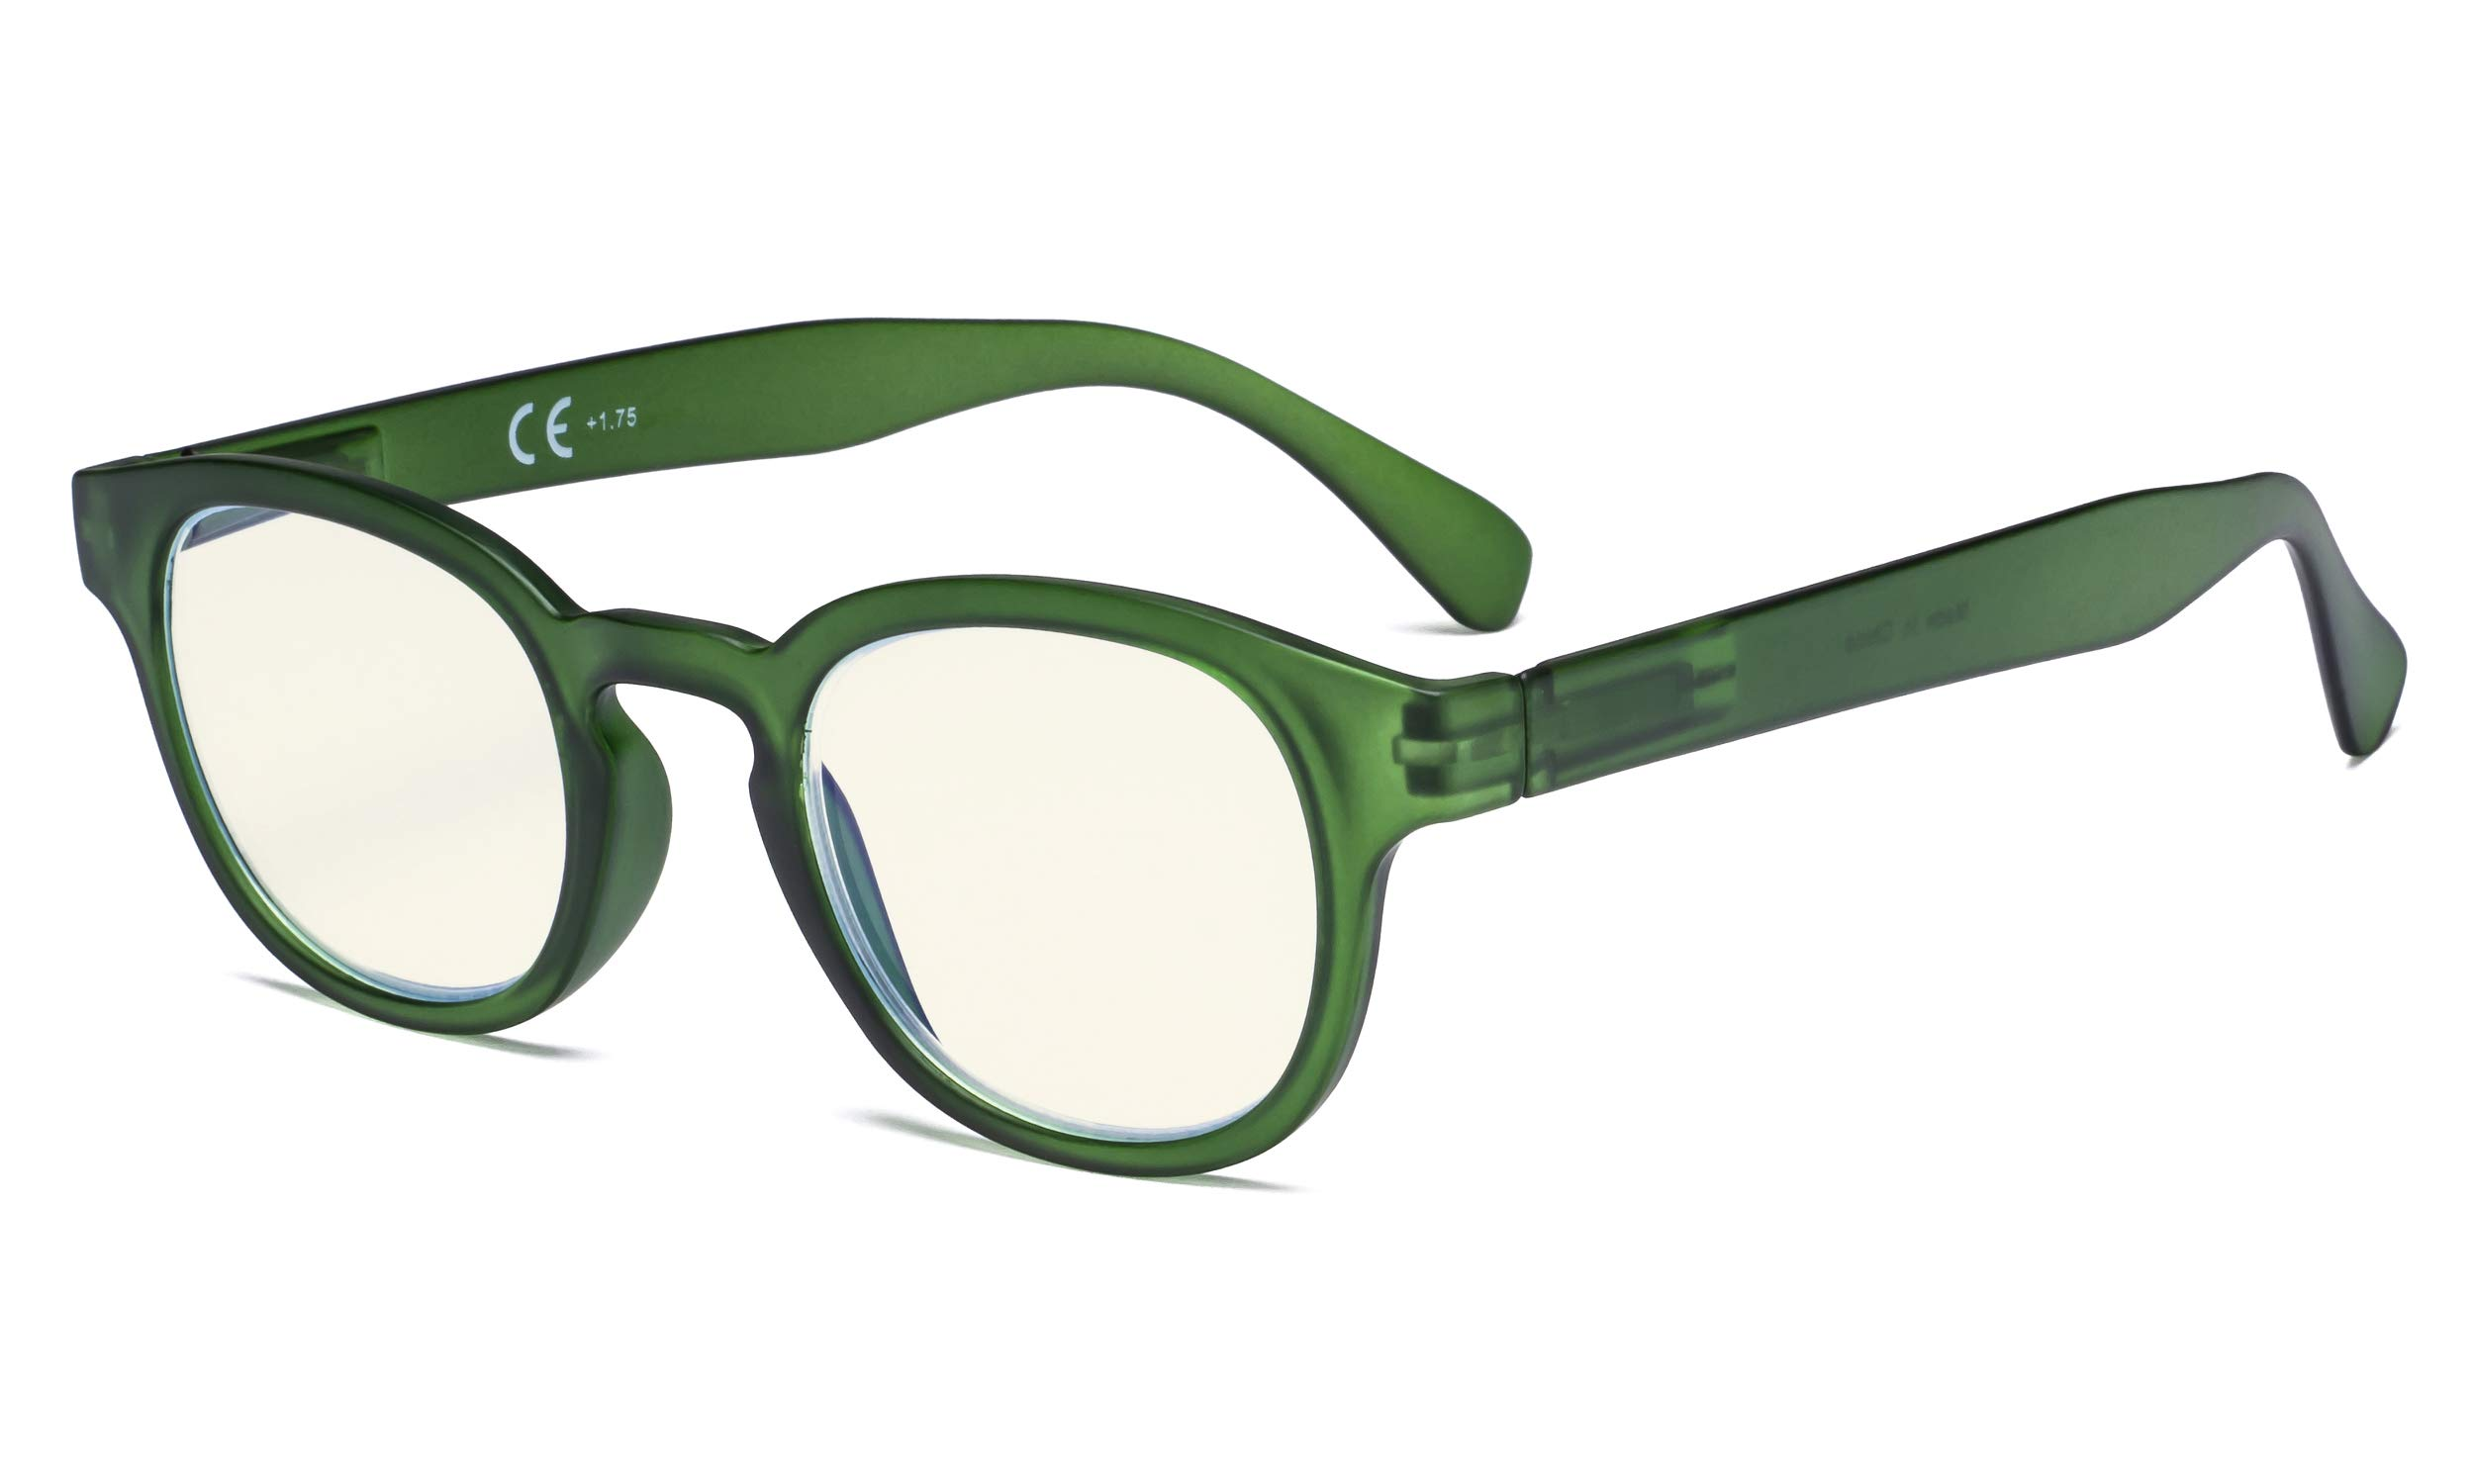 Eyekepper Ladies Computer Glasses - Blue Light Filter Readers Women - UV420 Protection Anti Glare Reading Glasses - Dark Green +1.75